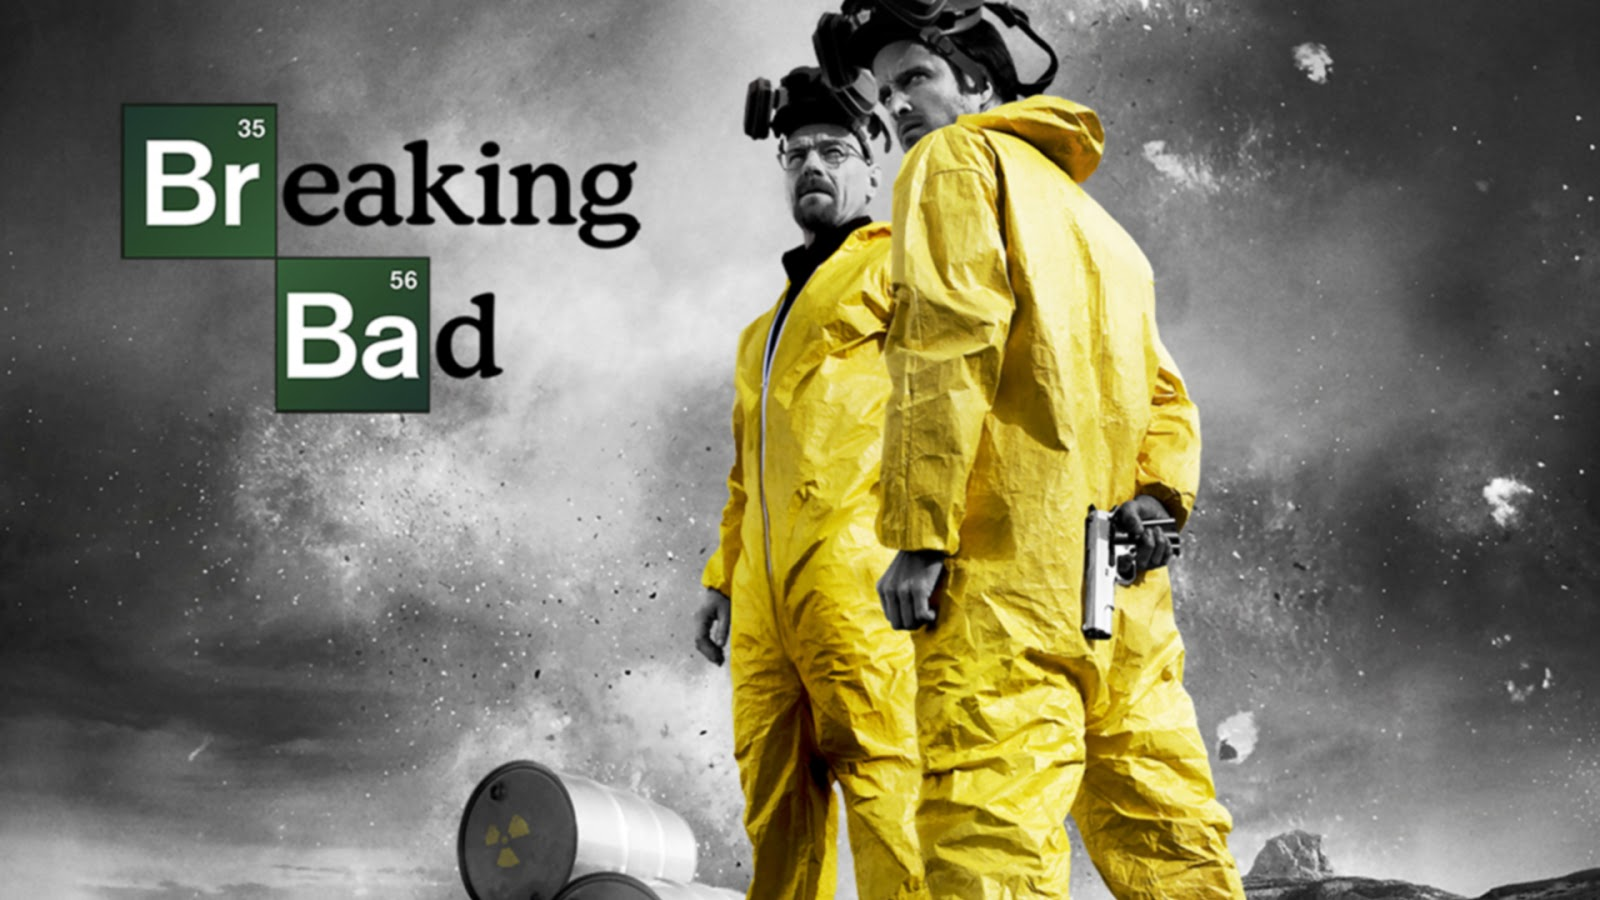 Breaking bad wallpapers breaking bad wallpaper Amazing Wallpapers 1600x900